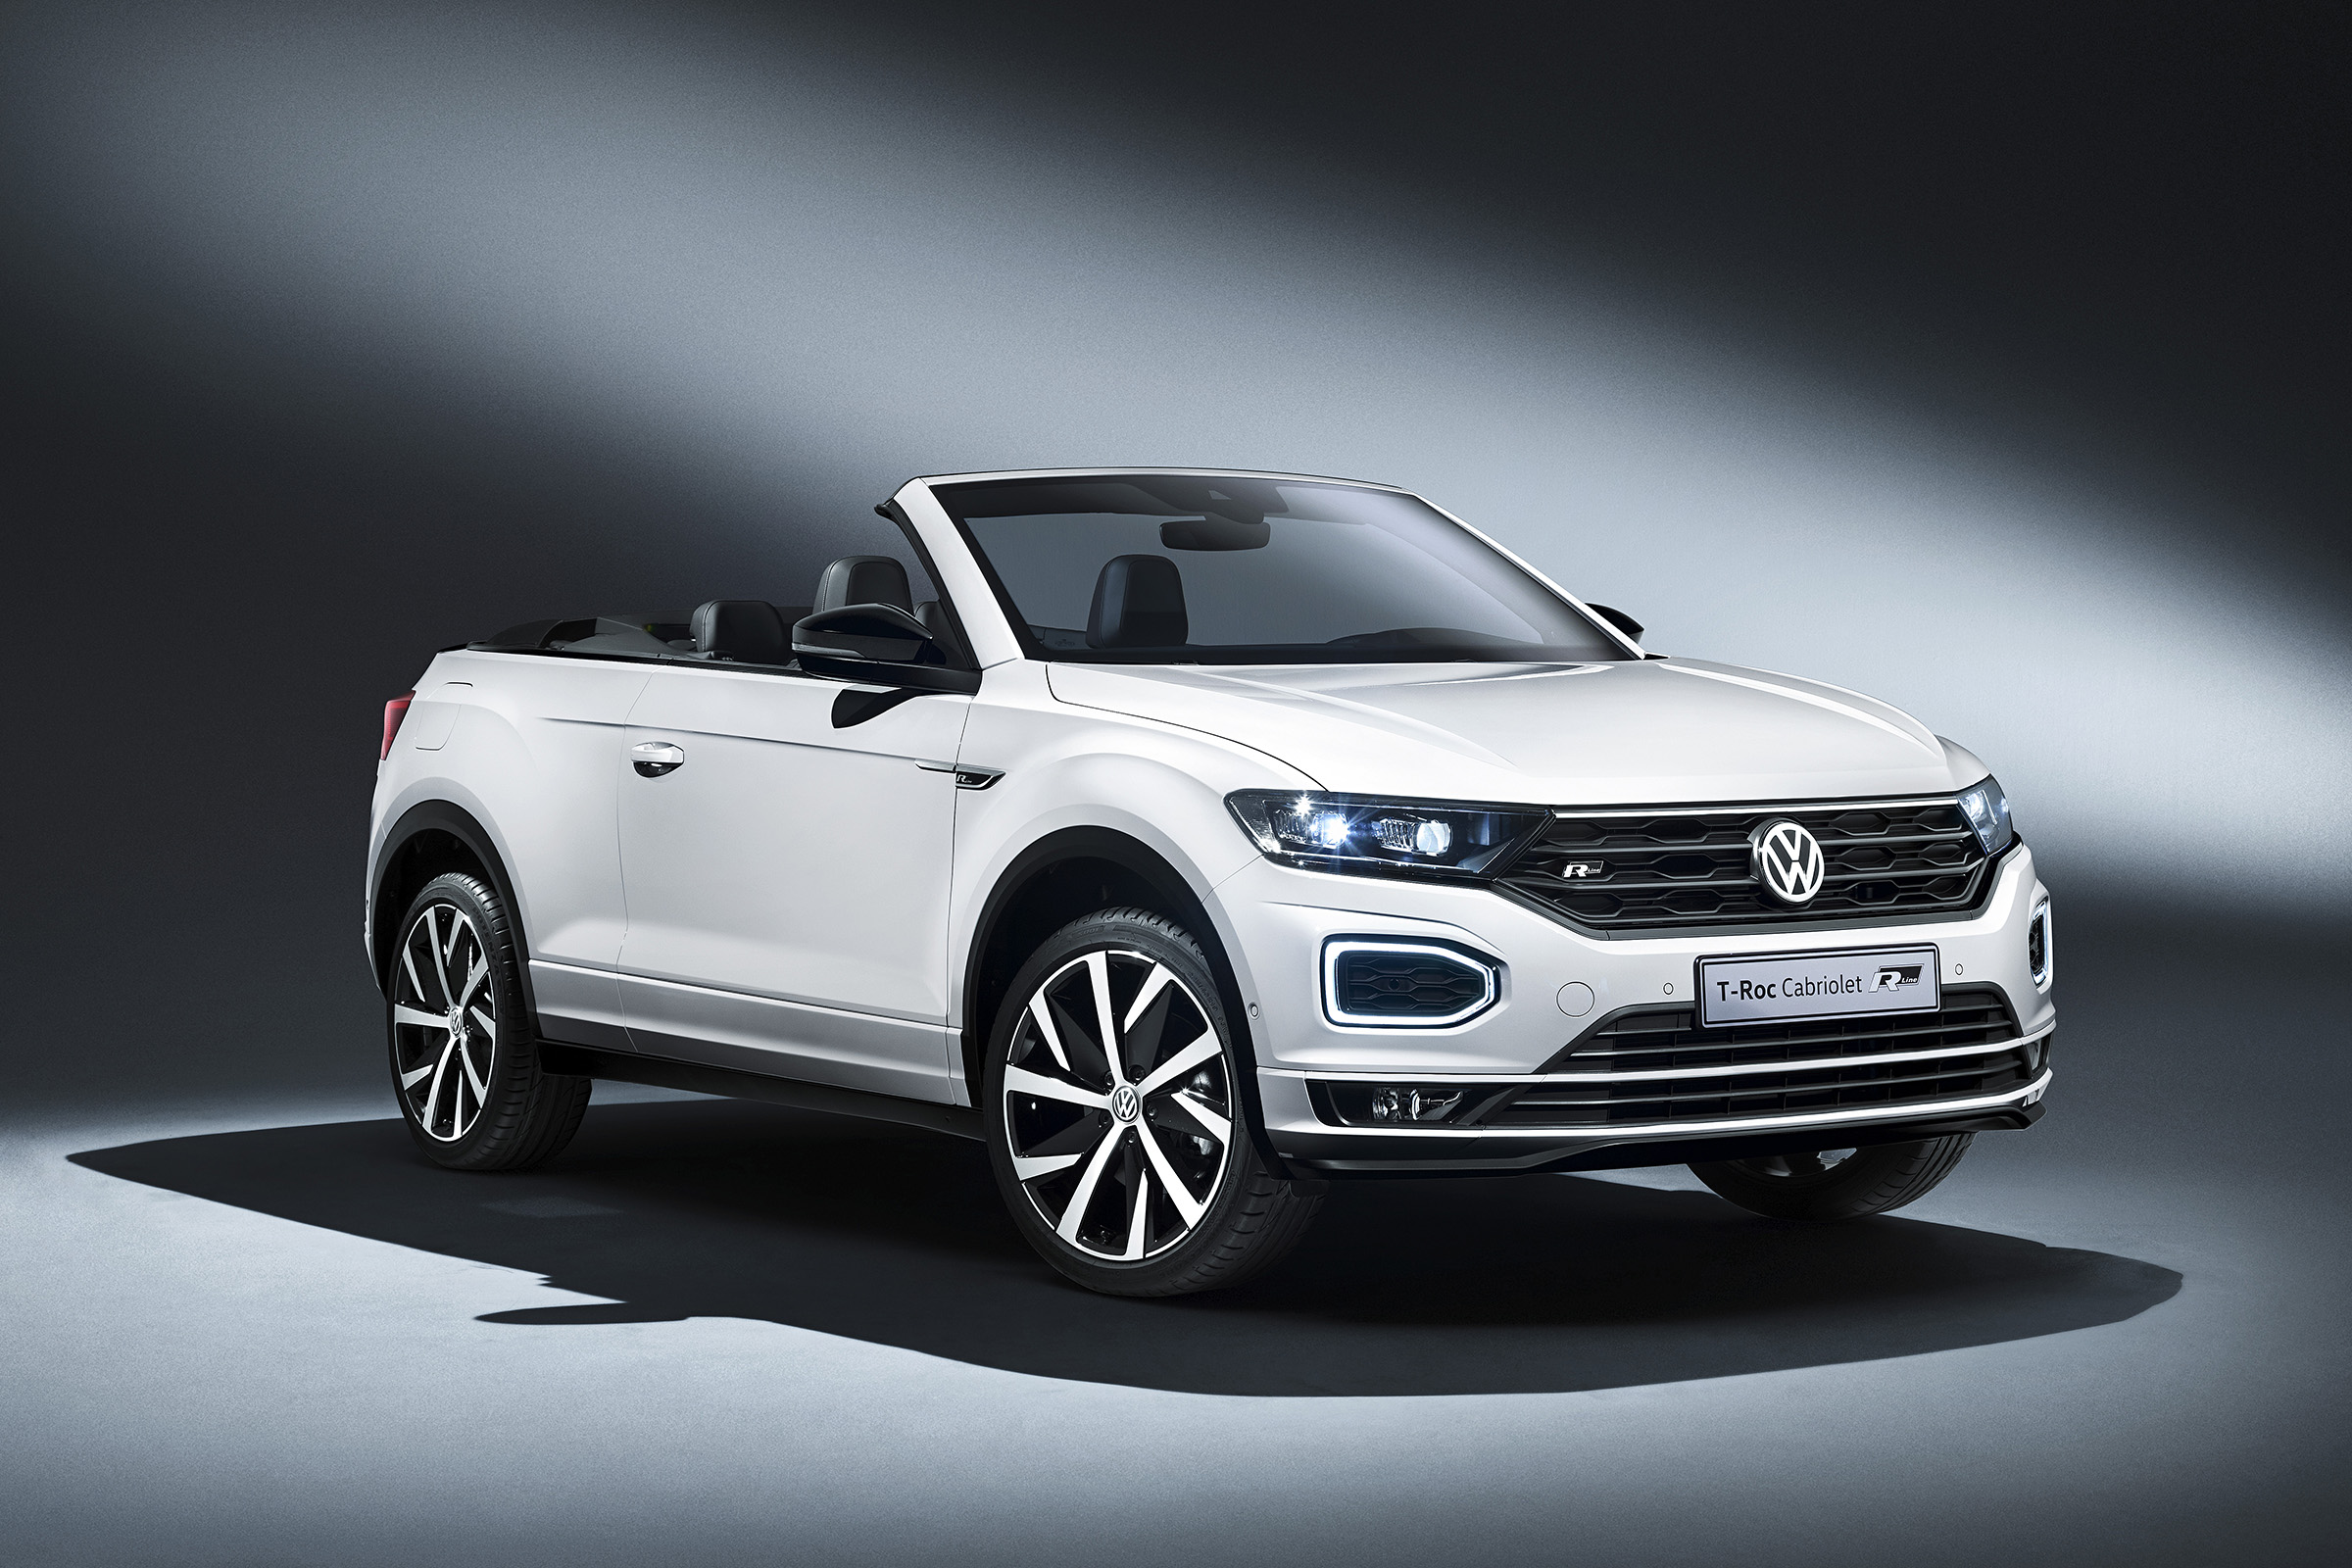 2020 Volkswagen T Roc Cabriolet Prices Specs And Release Date Carbuyer